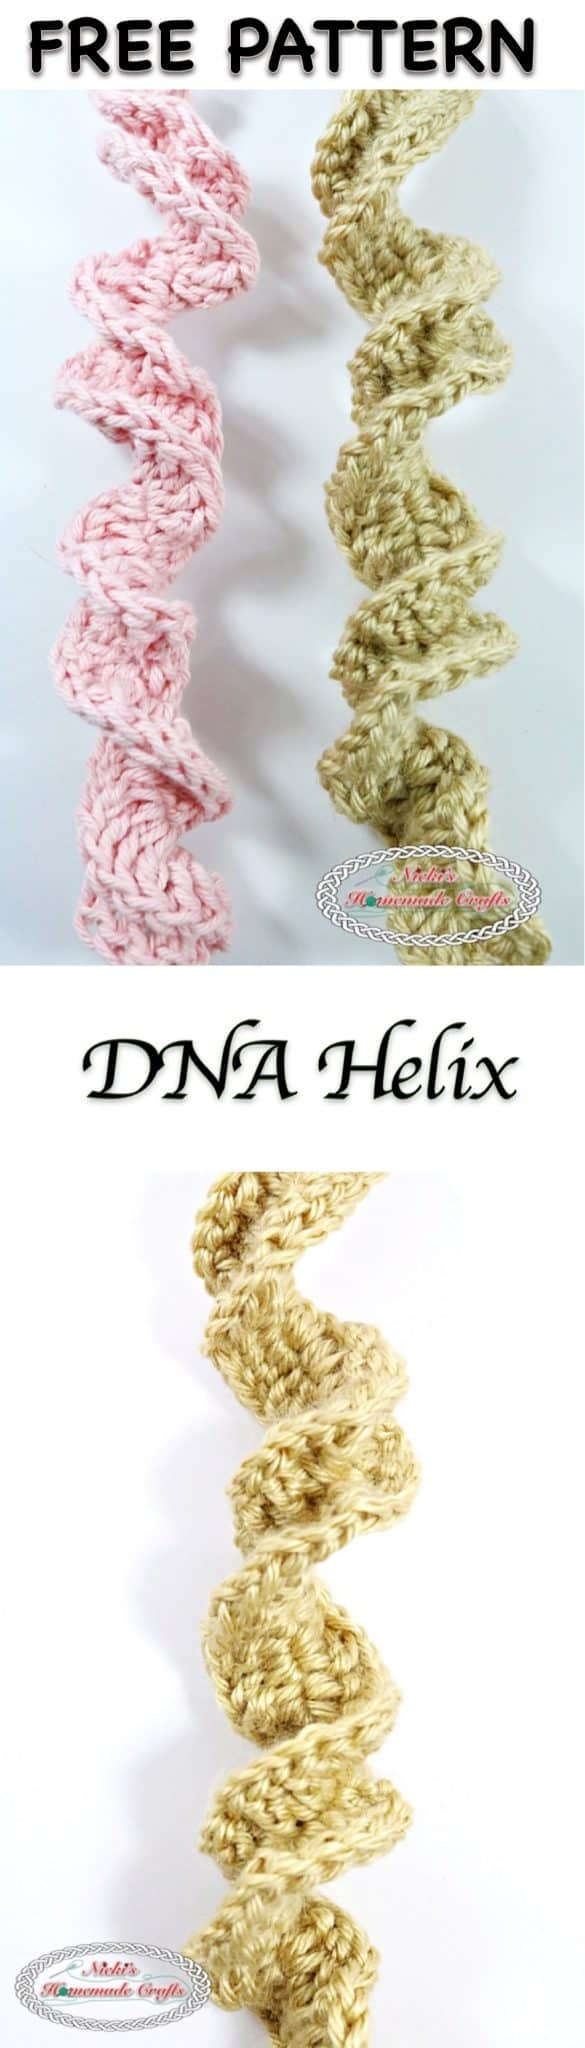 DNA Helix - Free Crochet Pattern by Nicki's Homemade Crafts